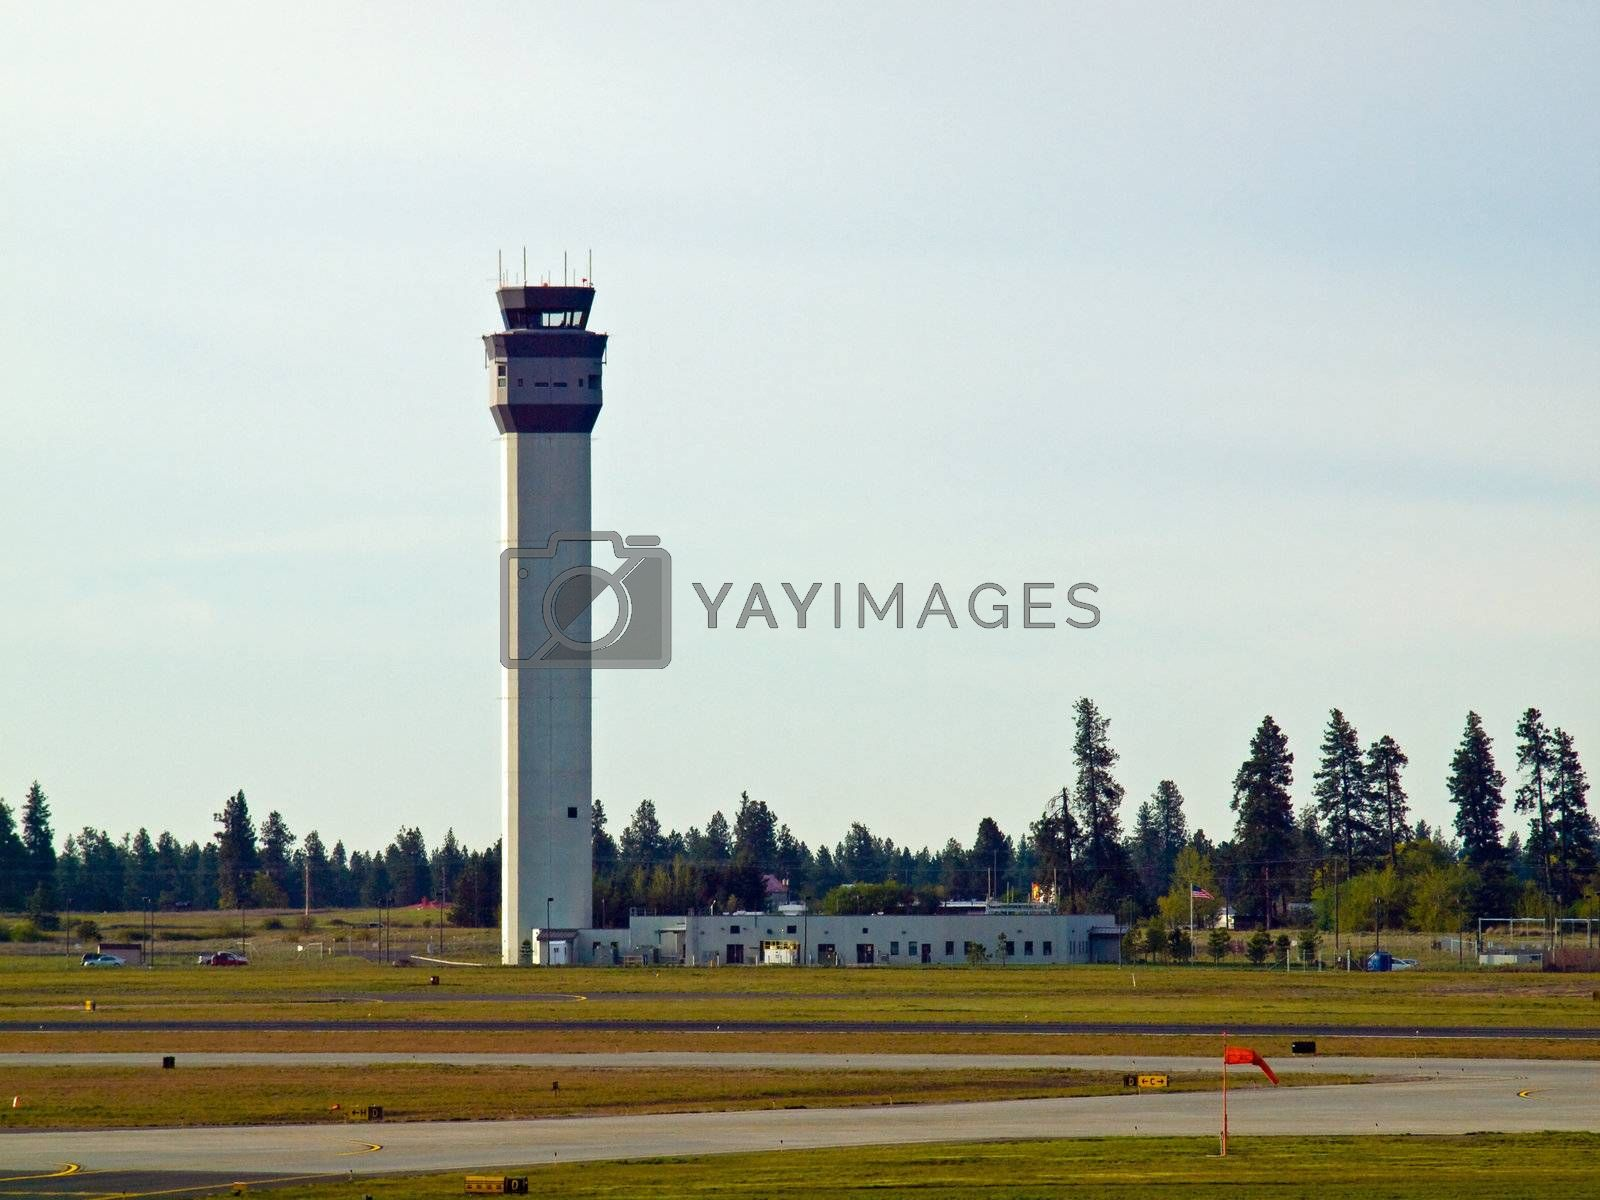 The Air Traffic Control Tower of a Modern Airport